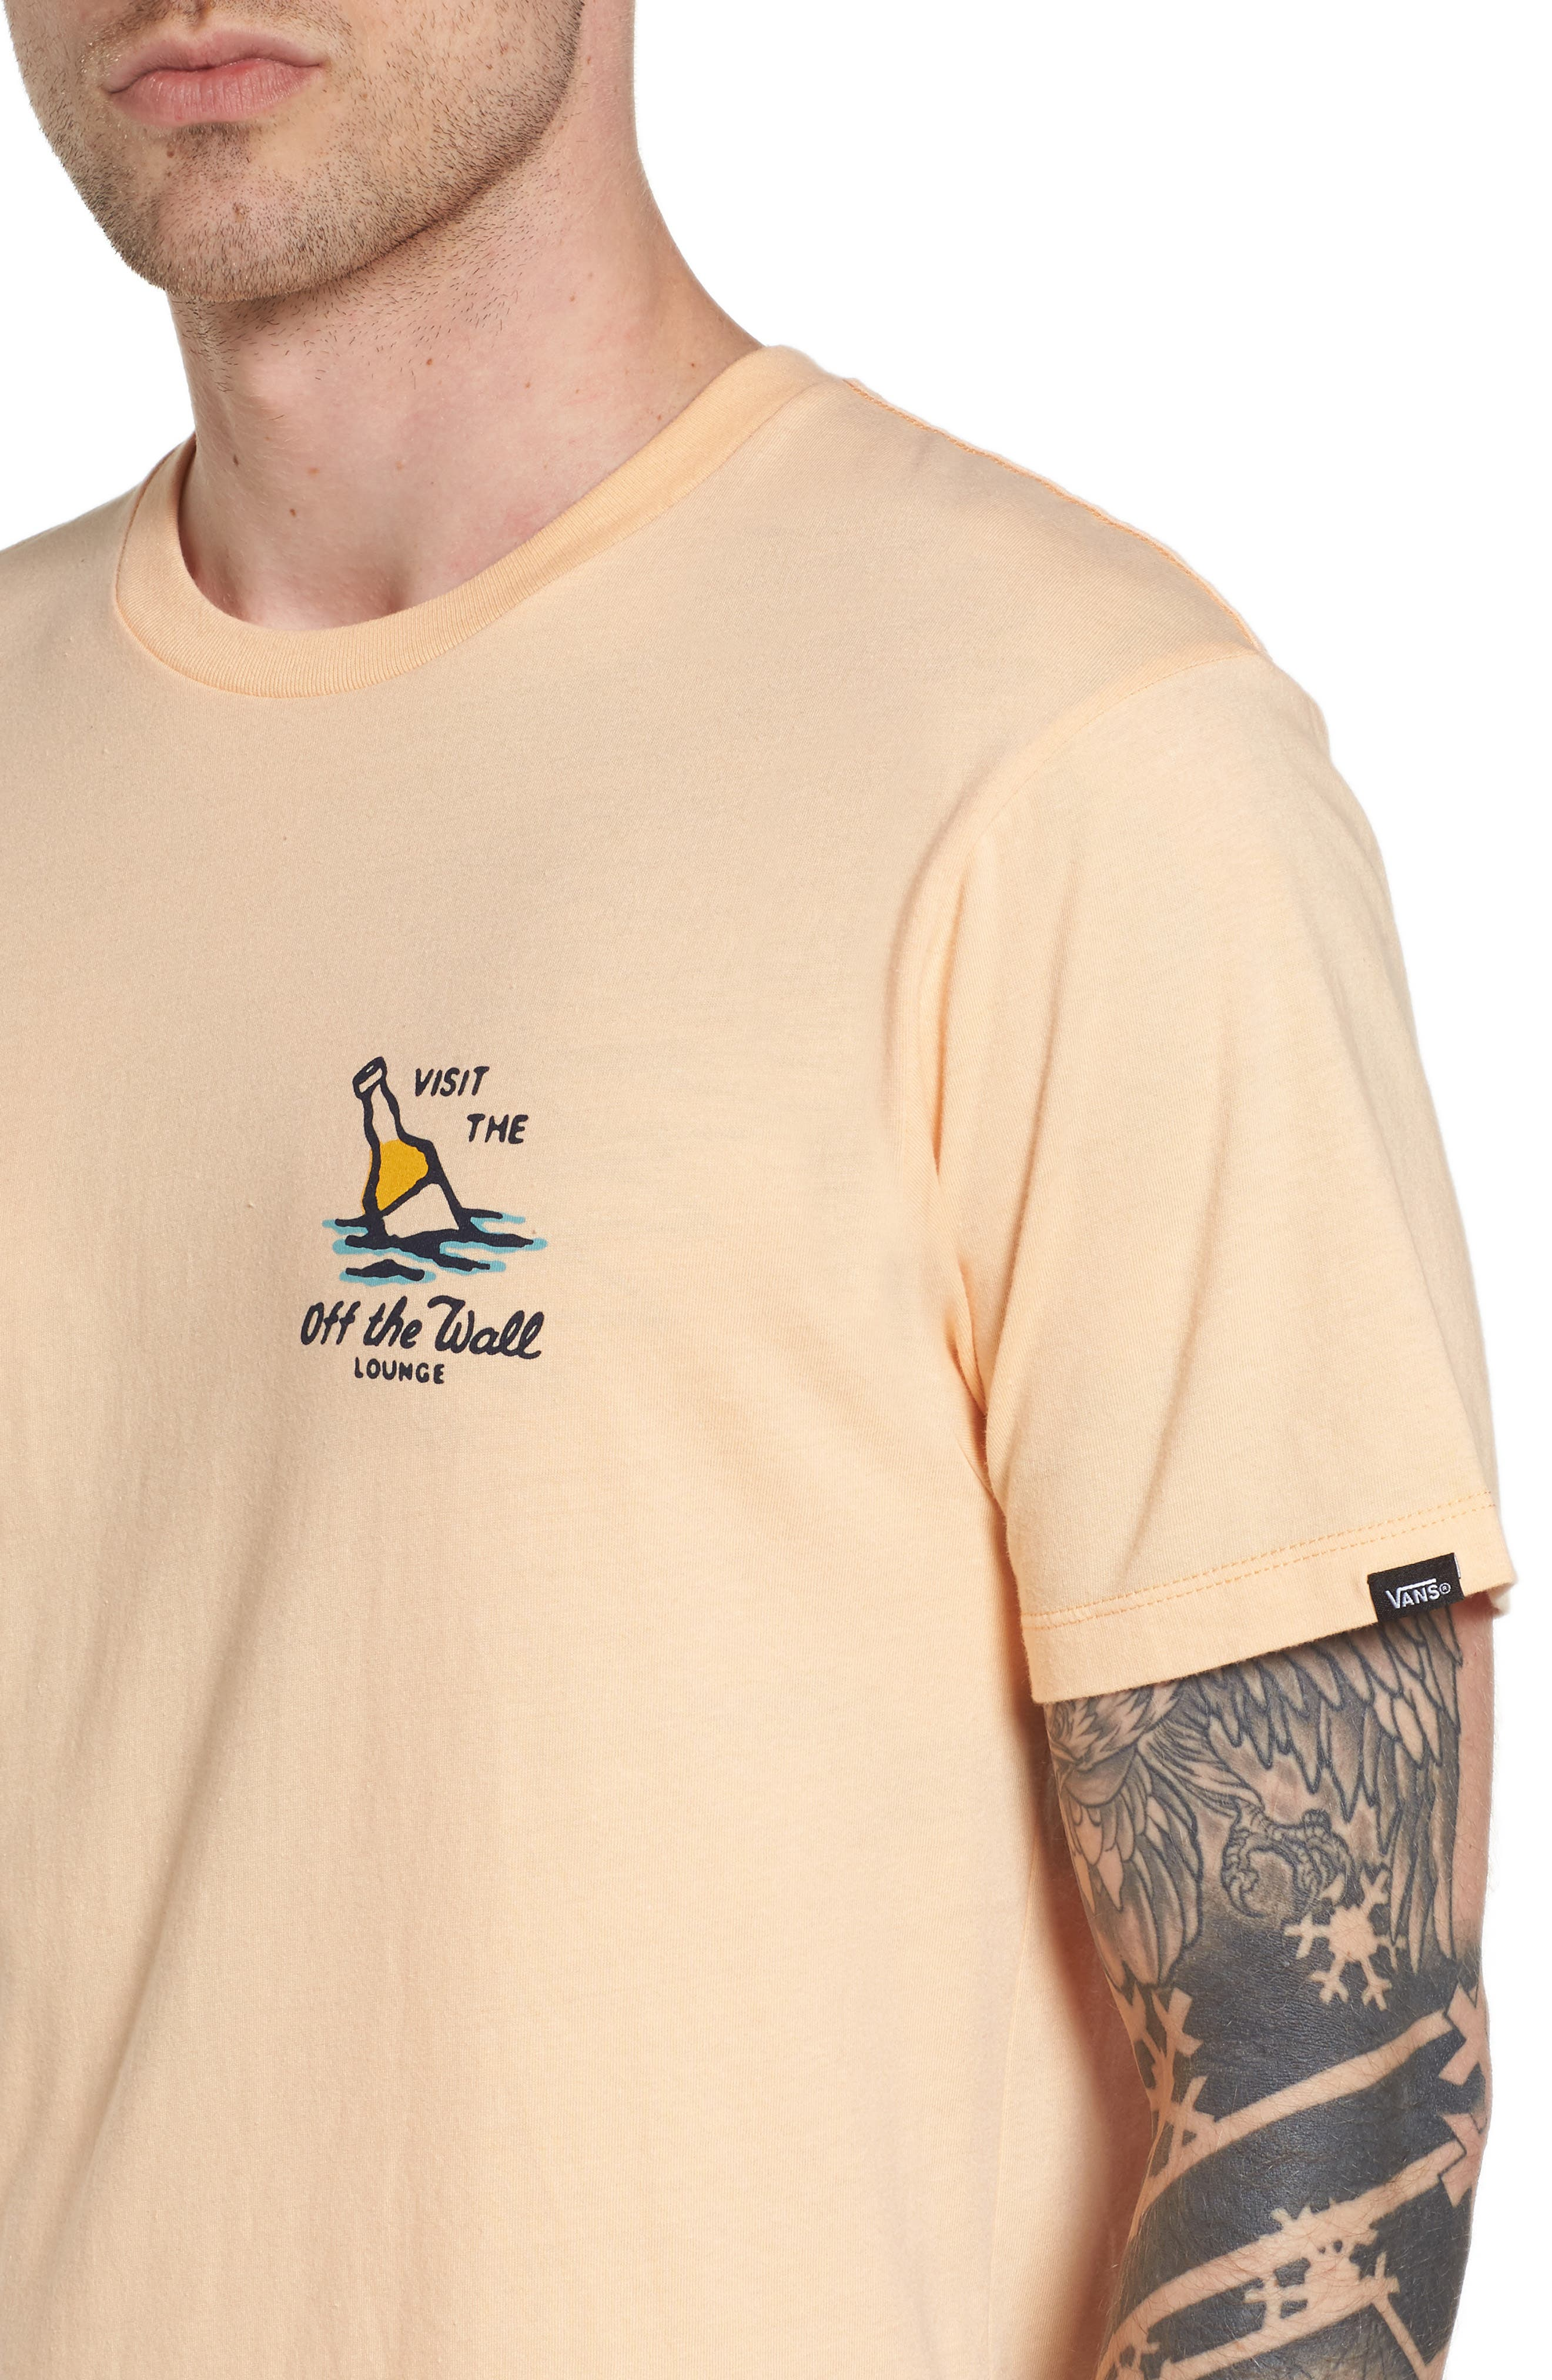 Off the Wall Lounge T-Shirt,                             Alternate thumbnail 4, color,                             810